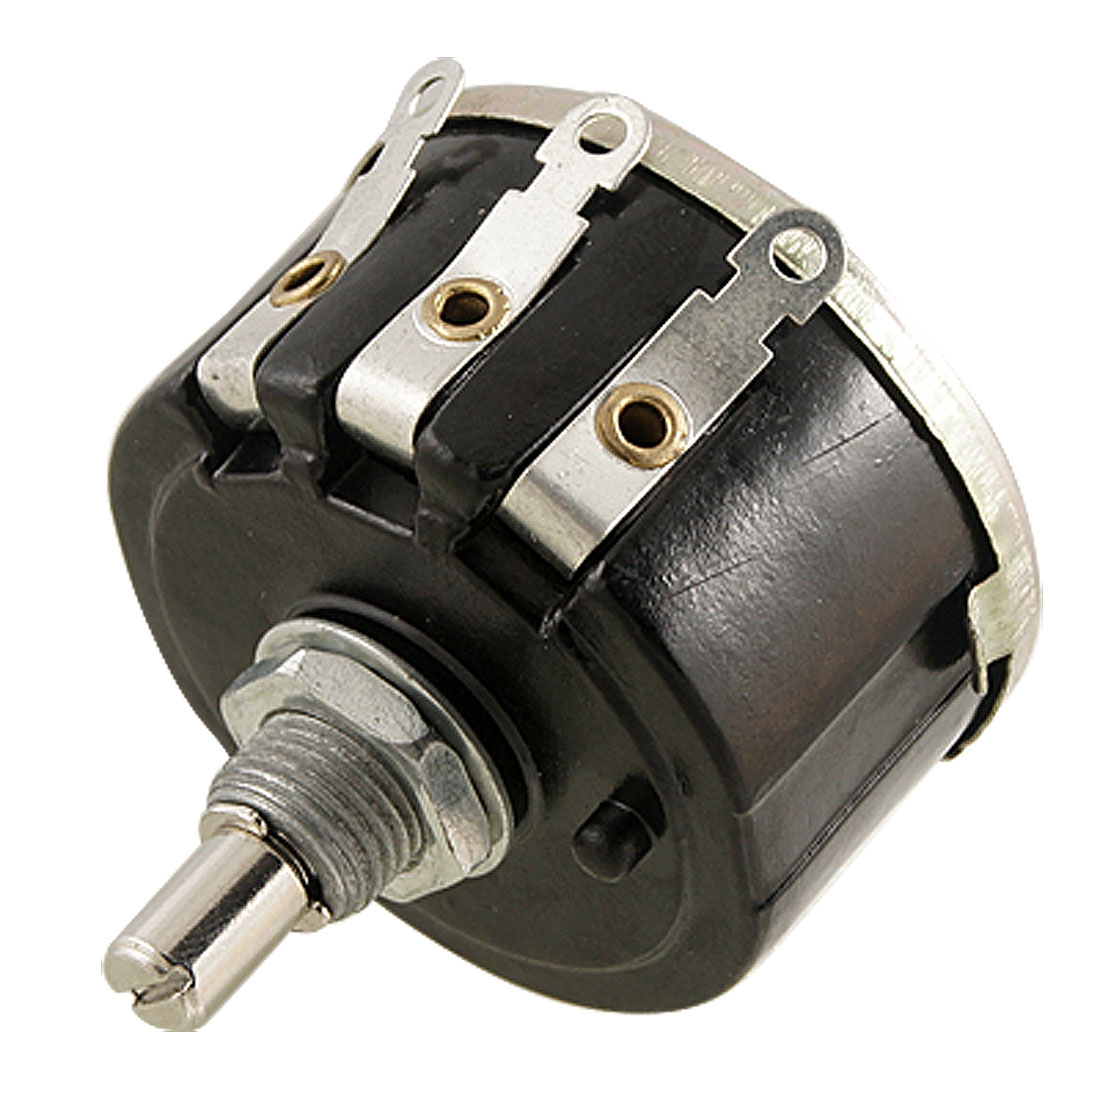 WX112(050) 5W 4.7K ohm Single Turn Wire Wound Potentiometer